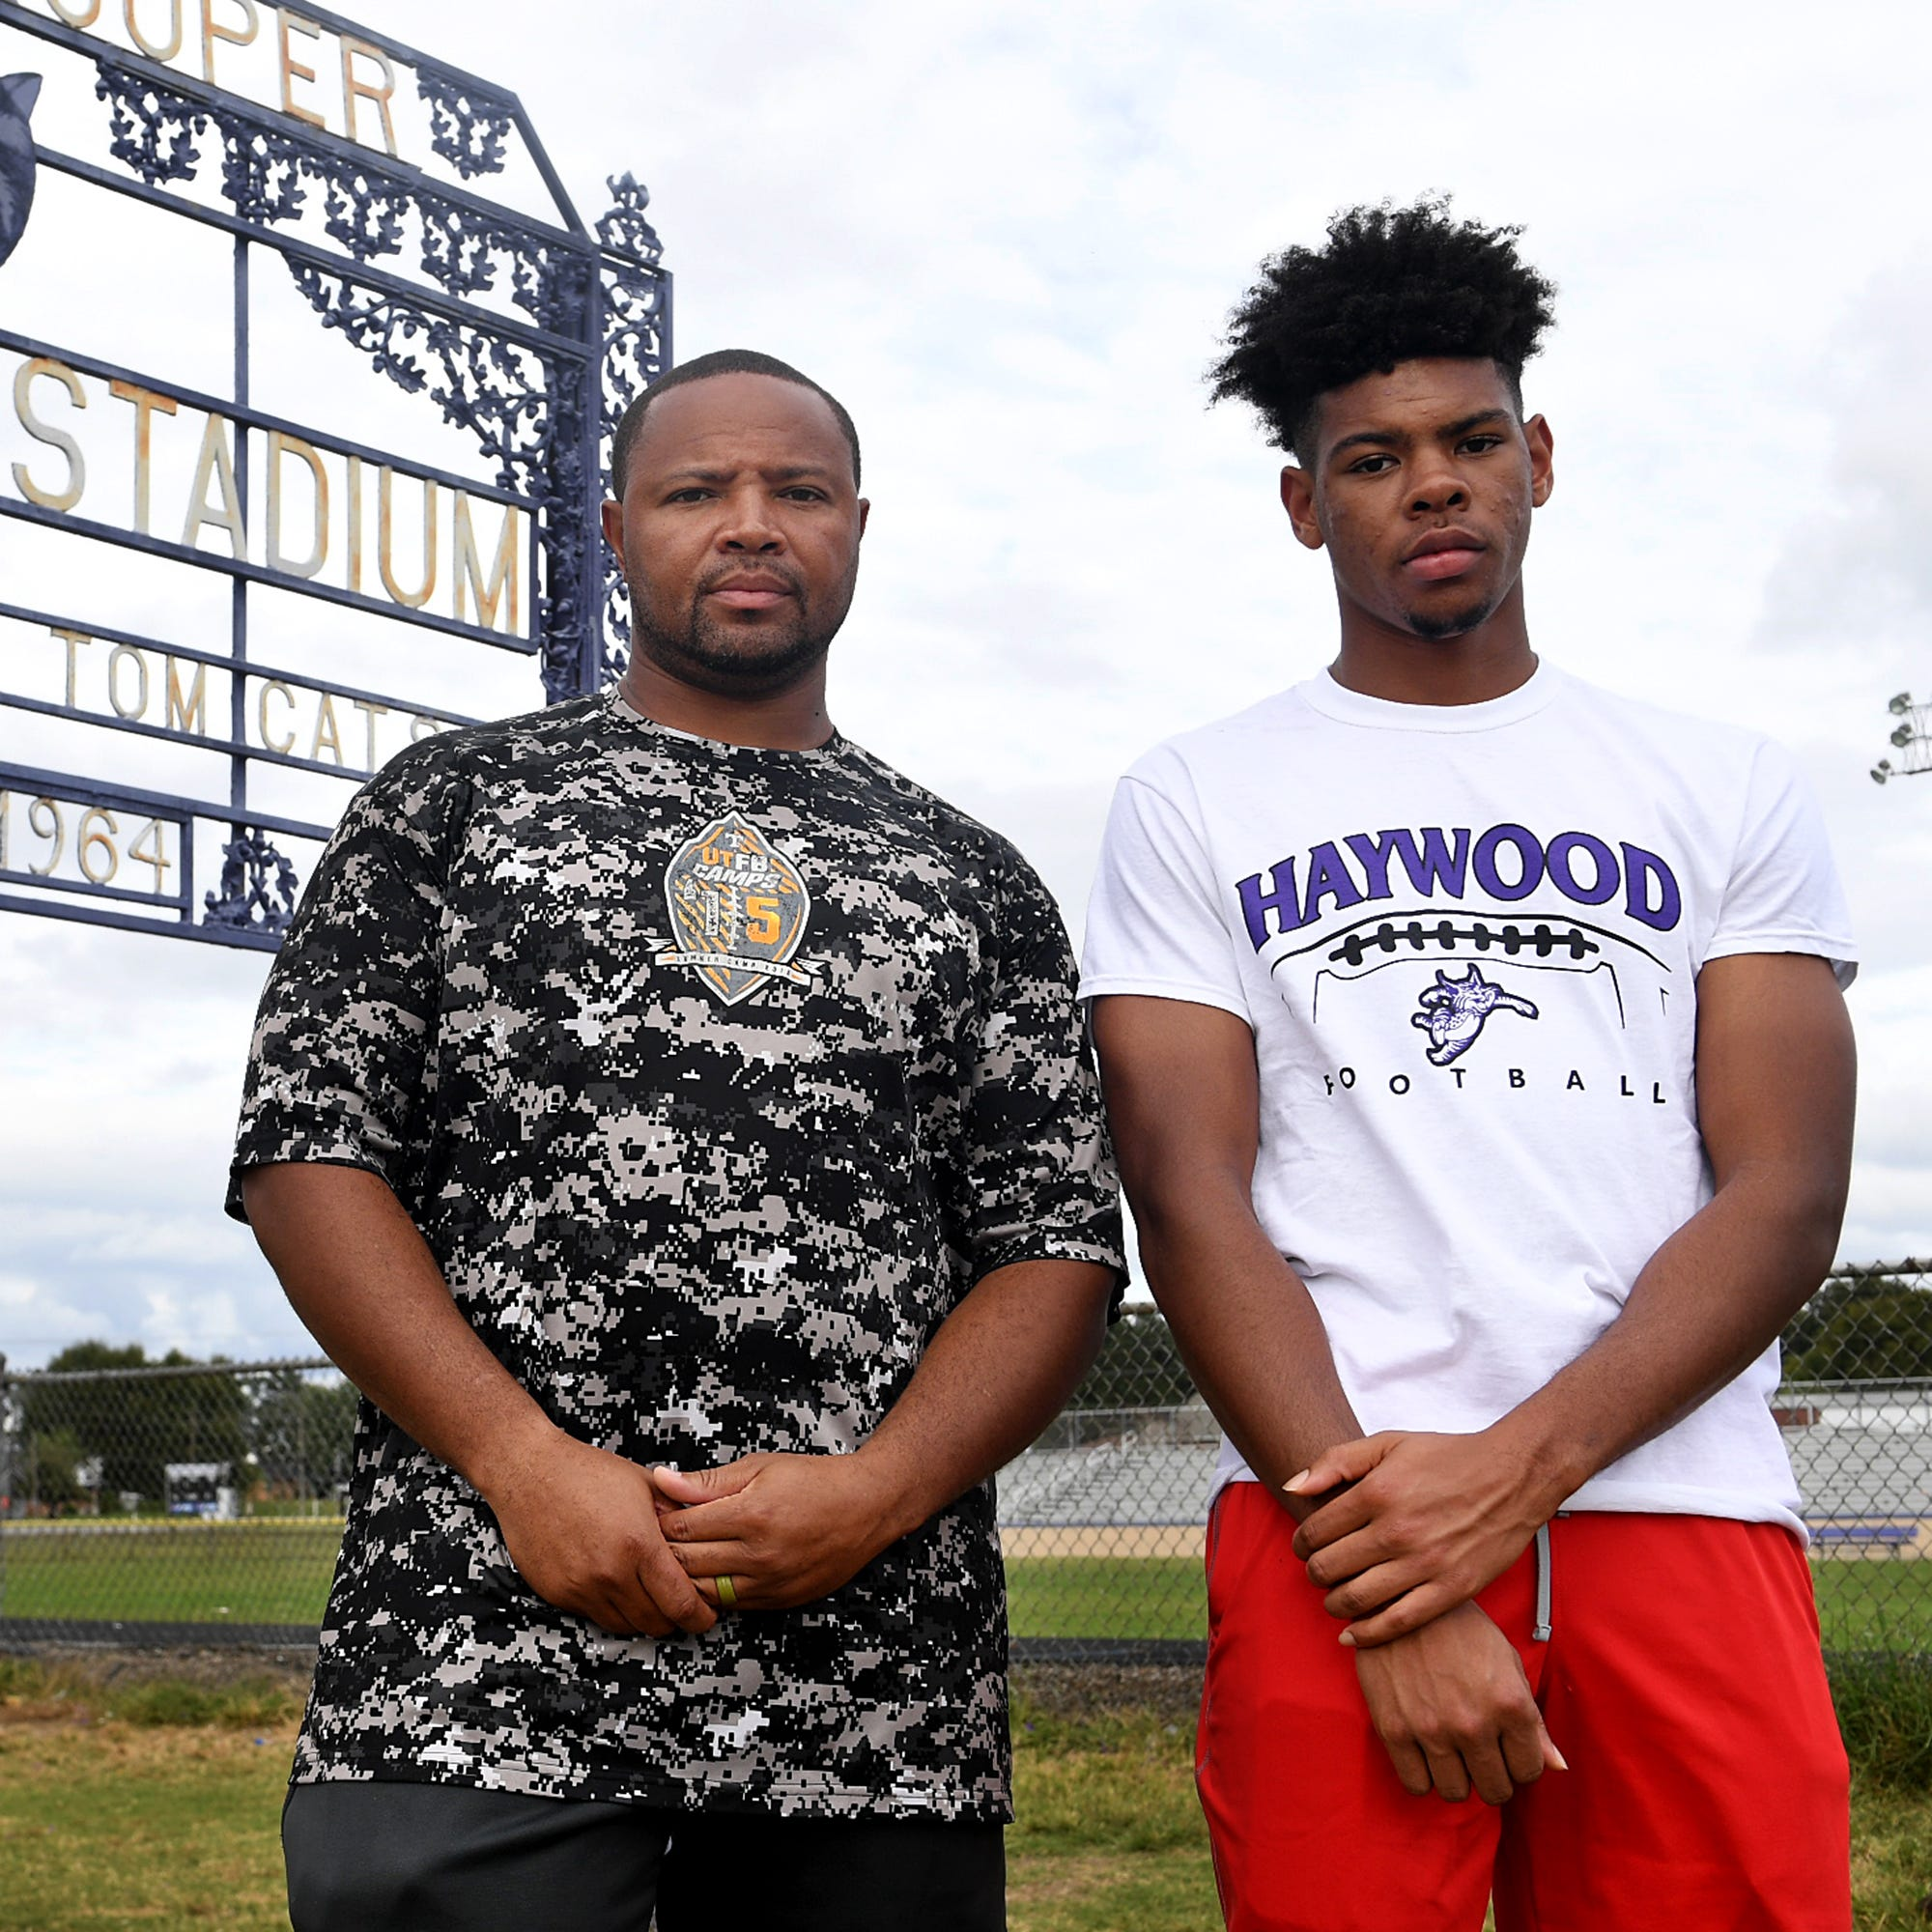 Haywood player's father made best tackle of the night on a running gunman